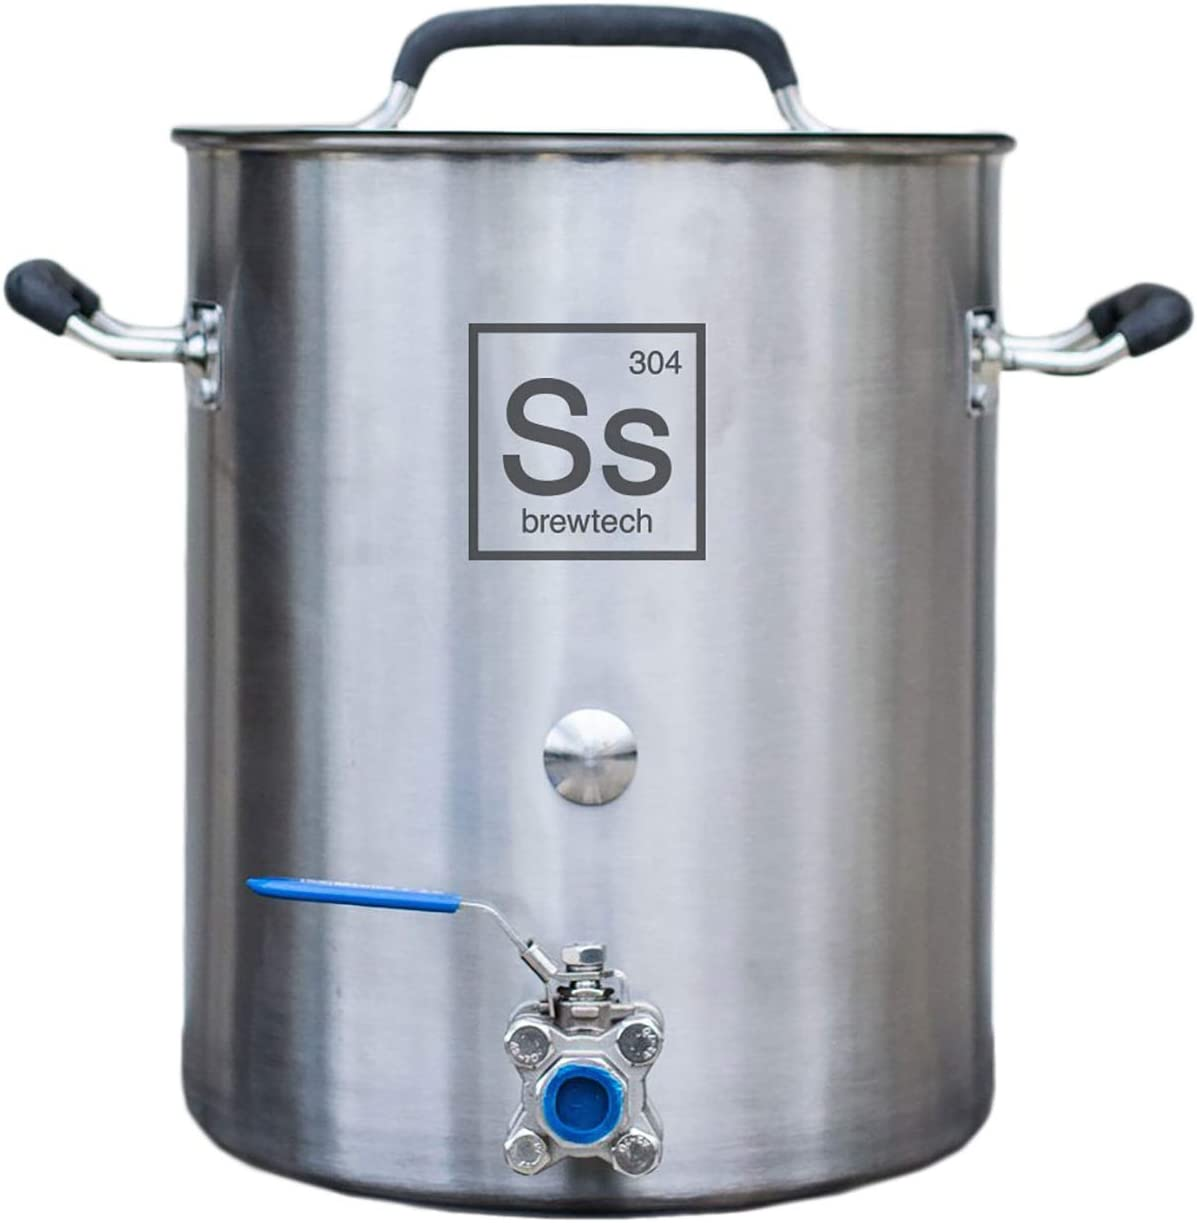 Ss Brewtech Home Brewing BrewMaster Kettle Stainless Steel 5.5 Gallon